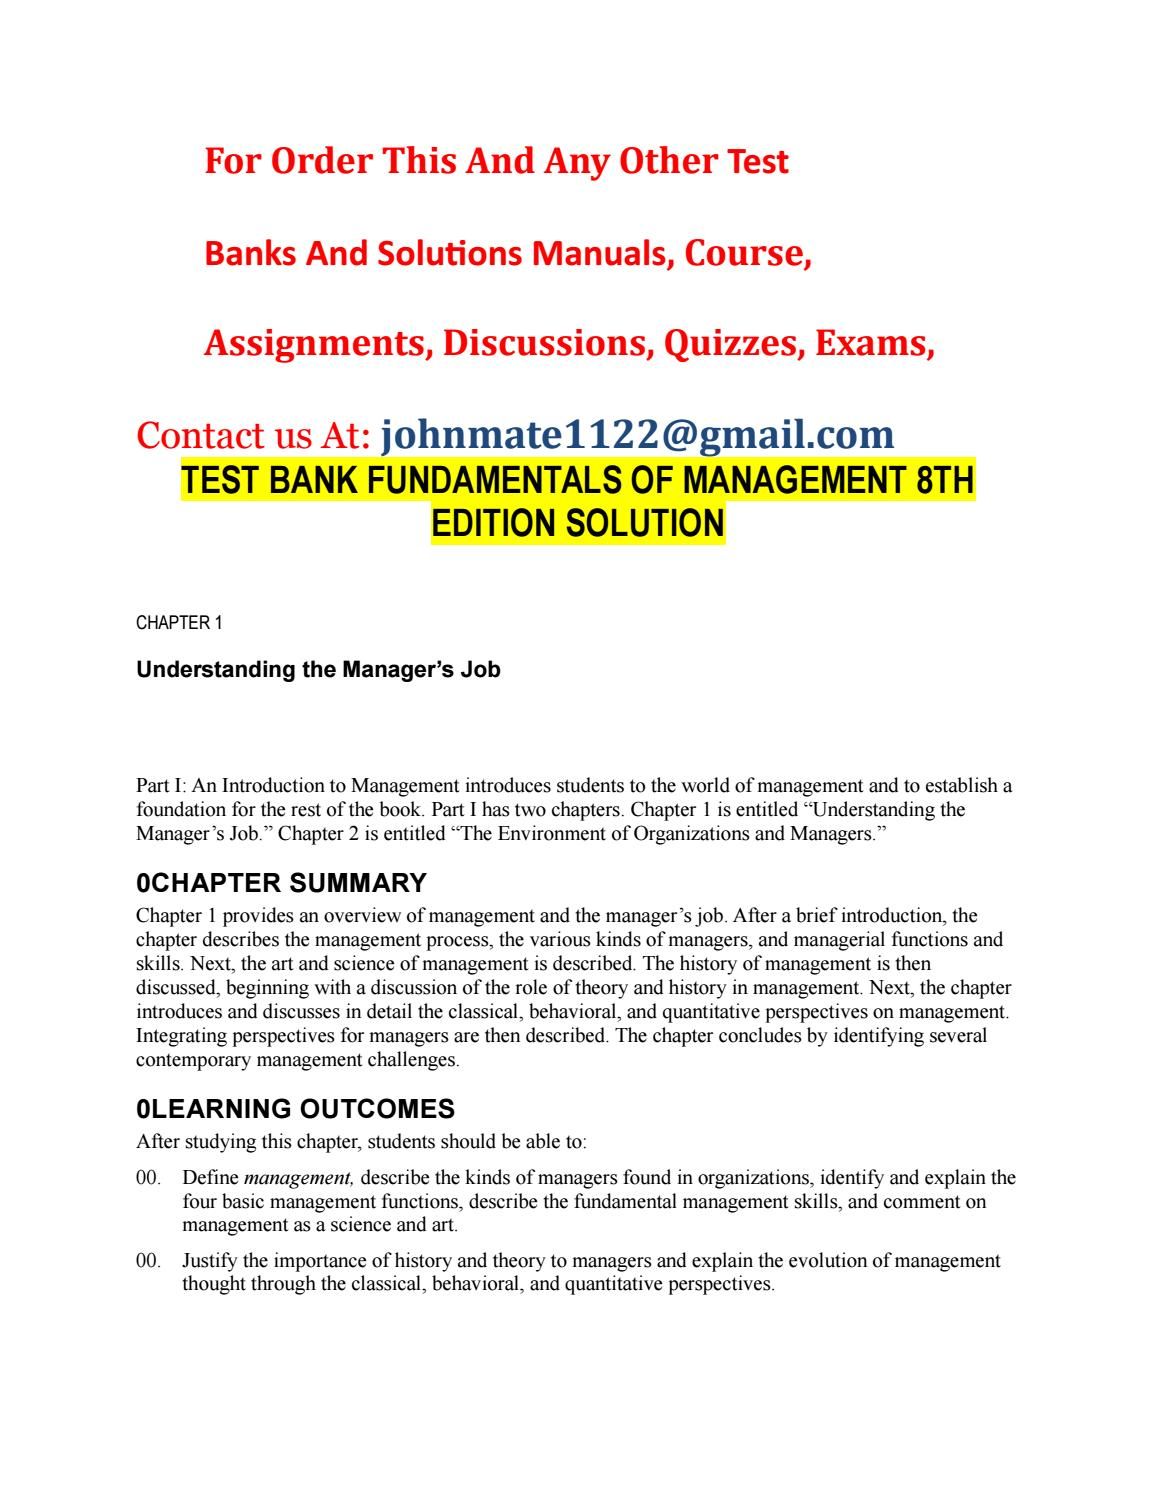 evolution of management thought assignment